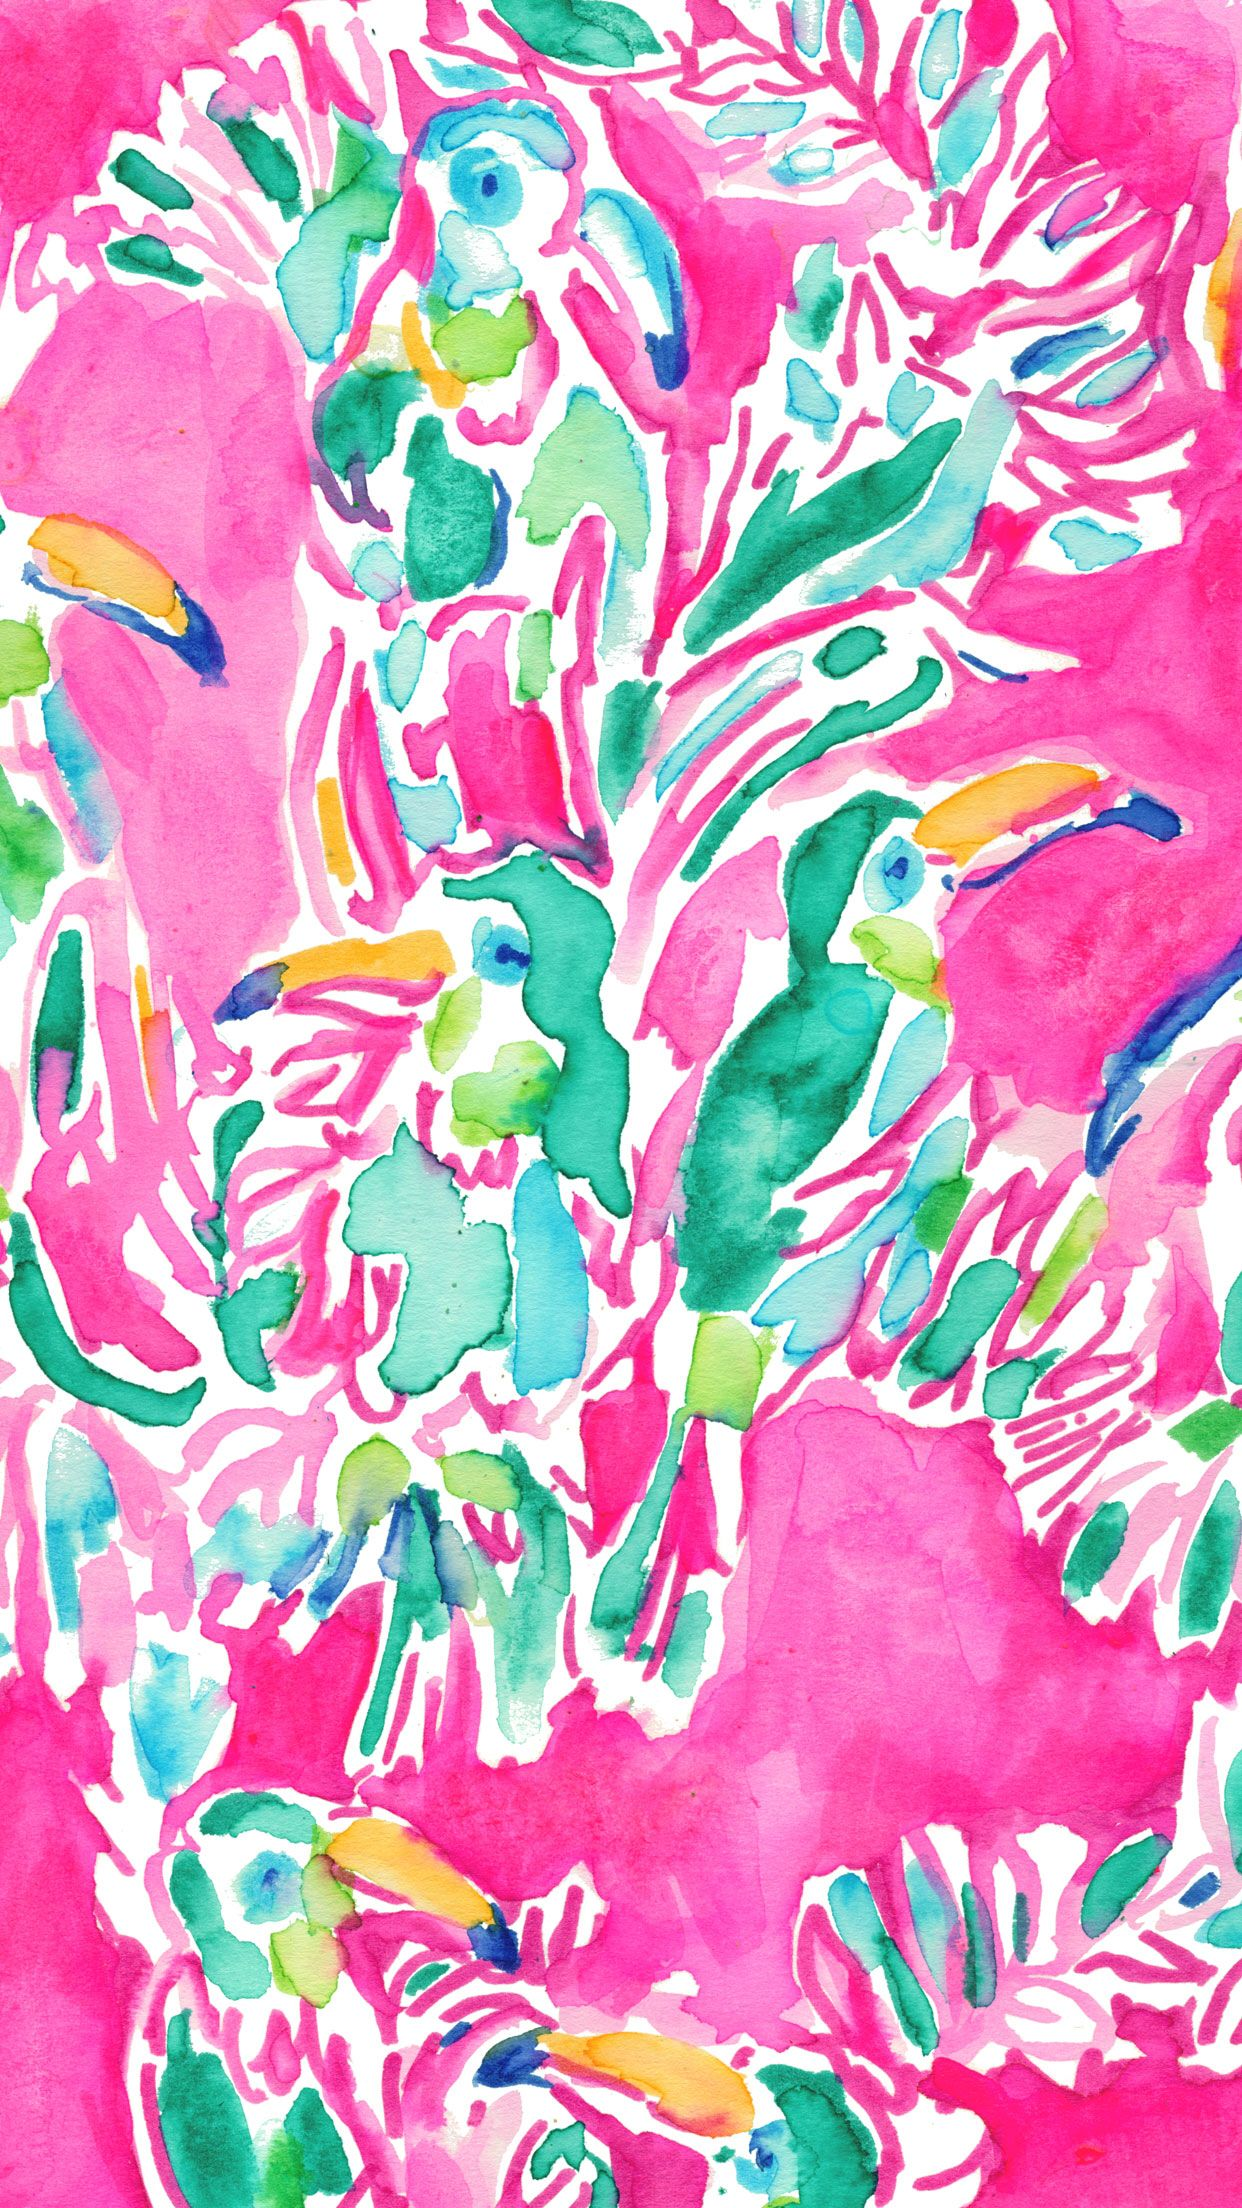 Dragonfruit Pink Toucan Can - summer 2016   Lilly pulitzer ...